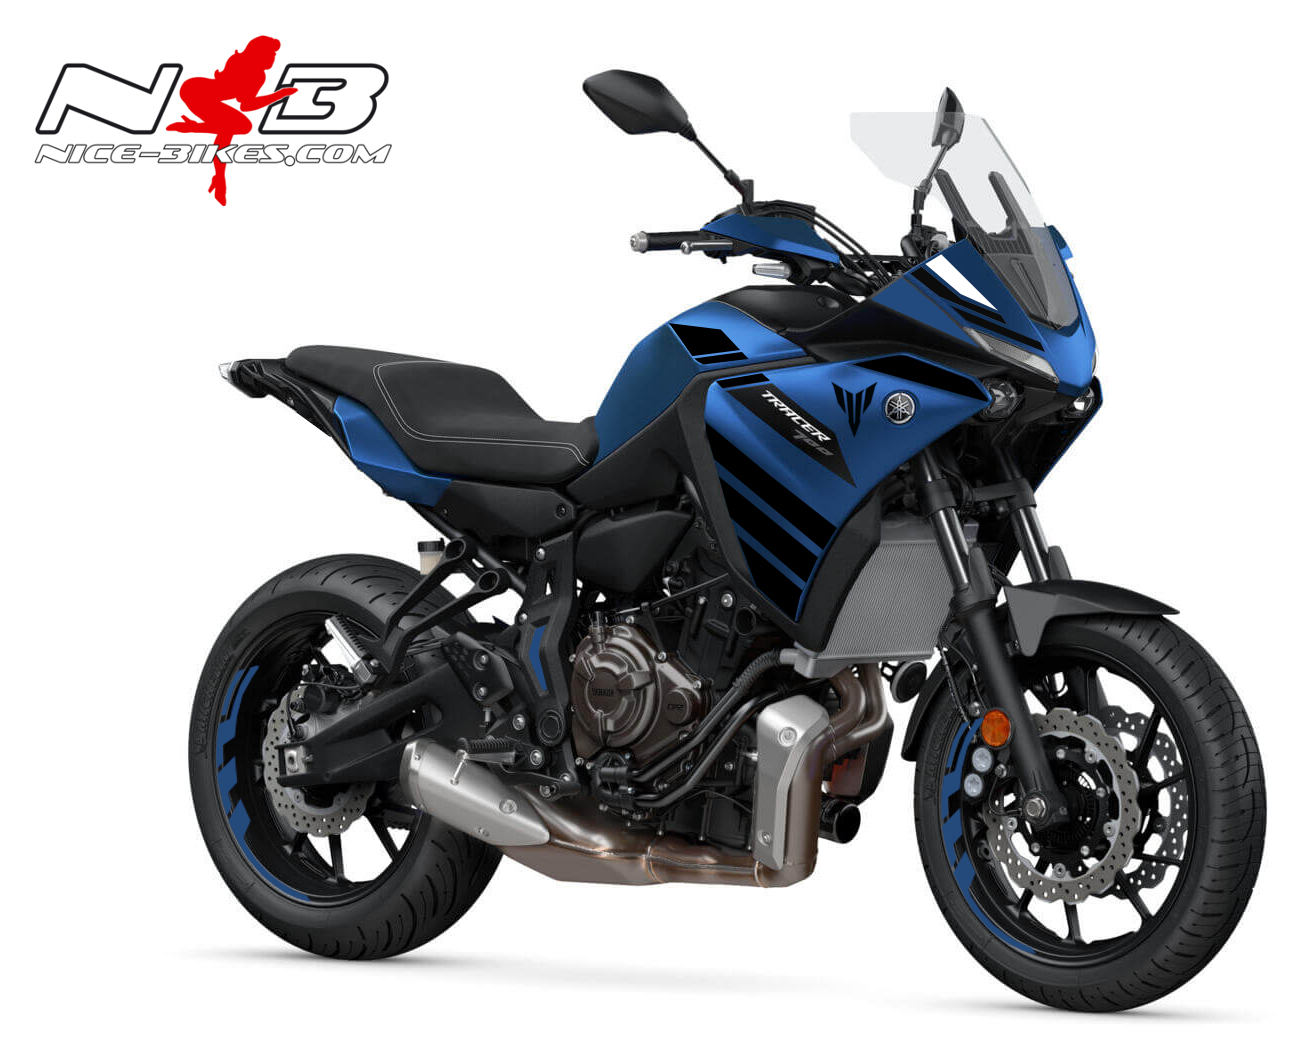 Foliendesign YAMAHA MT07 Tracer Bj. 2020 Racing Blue